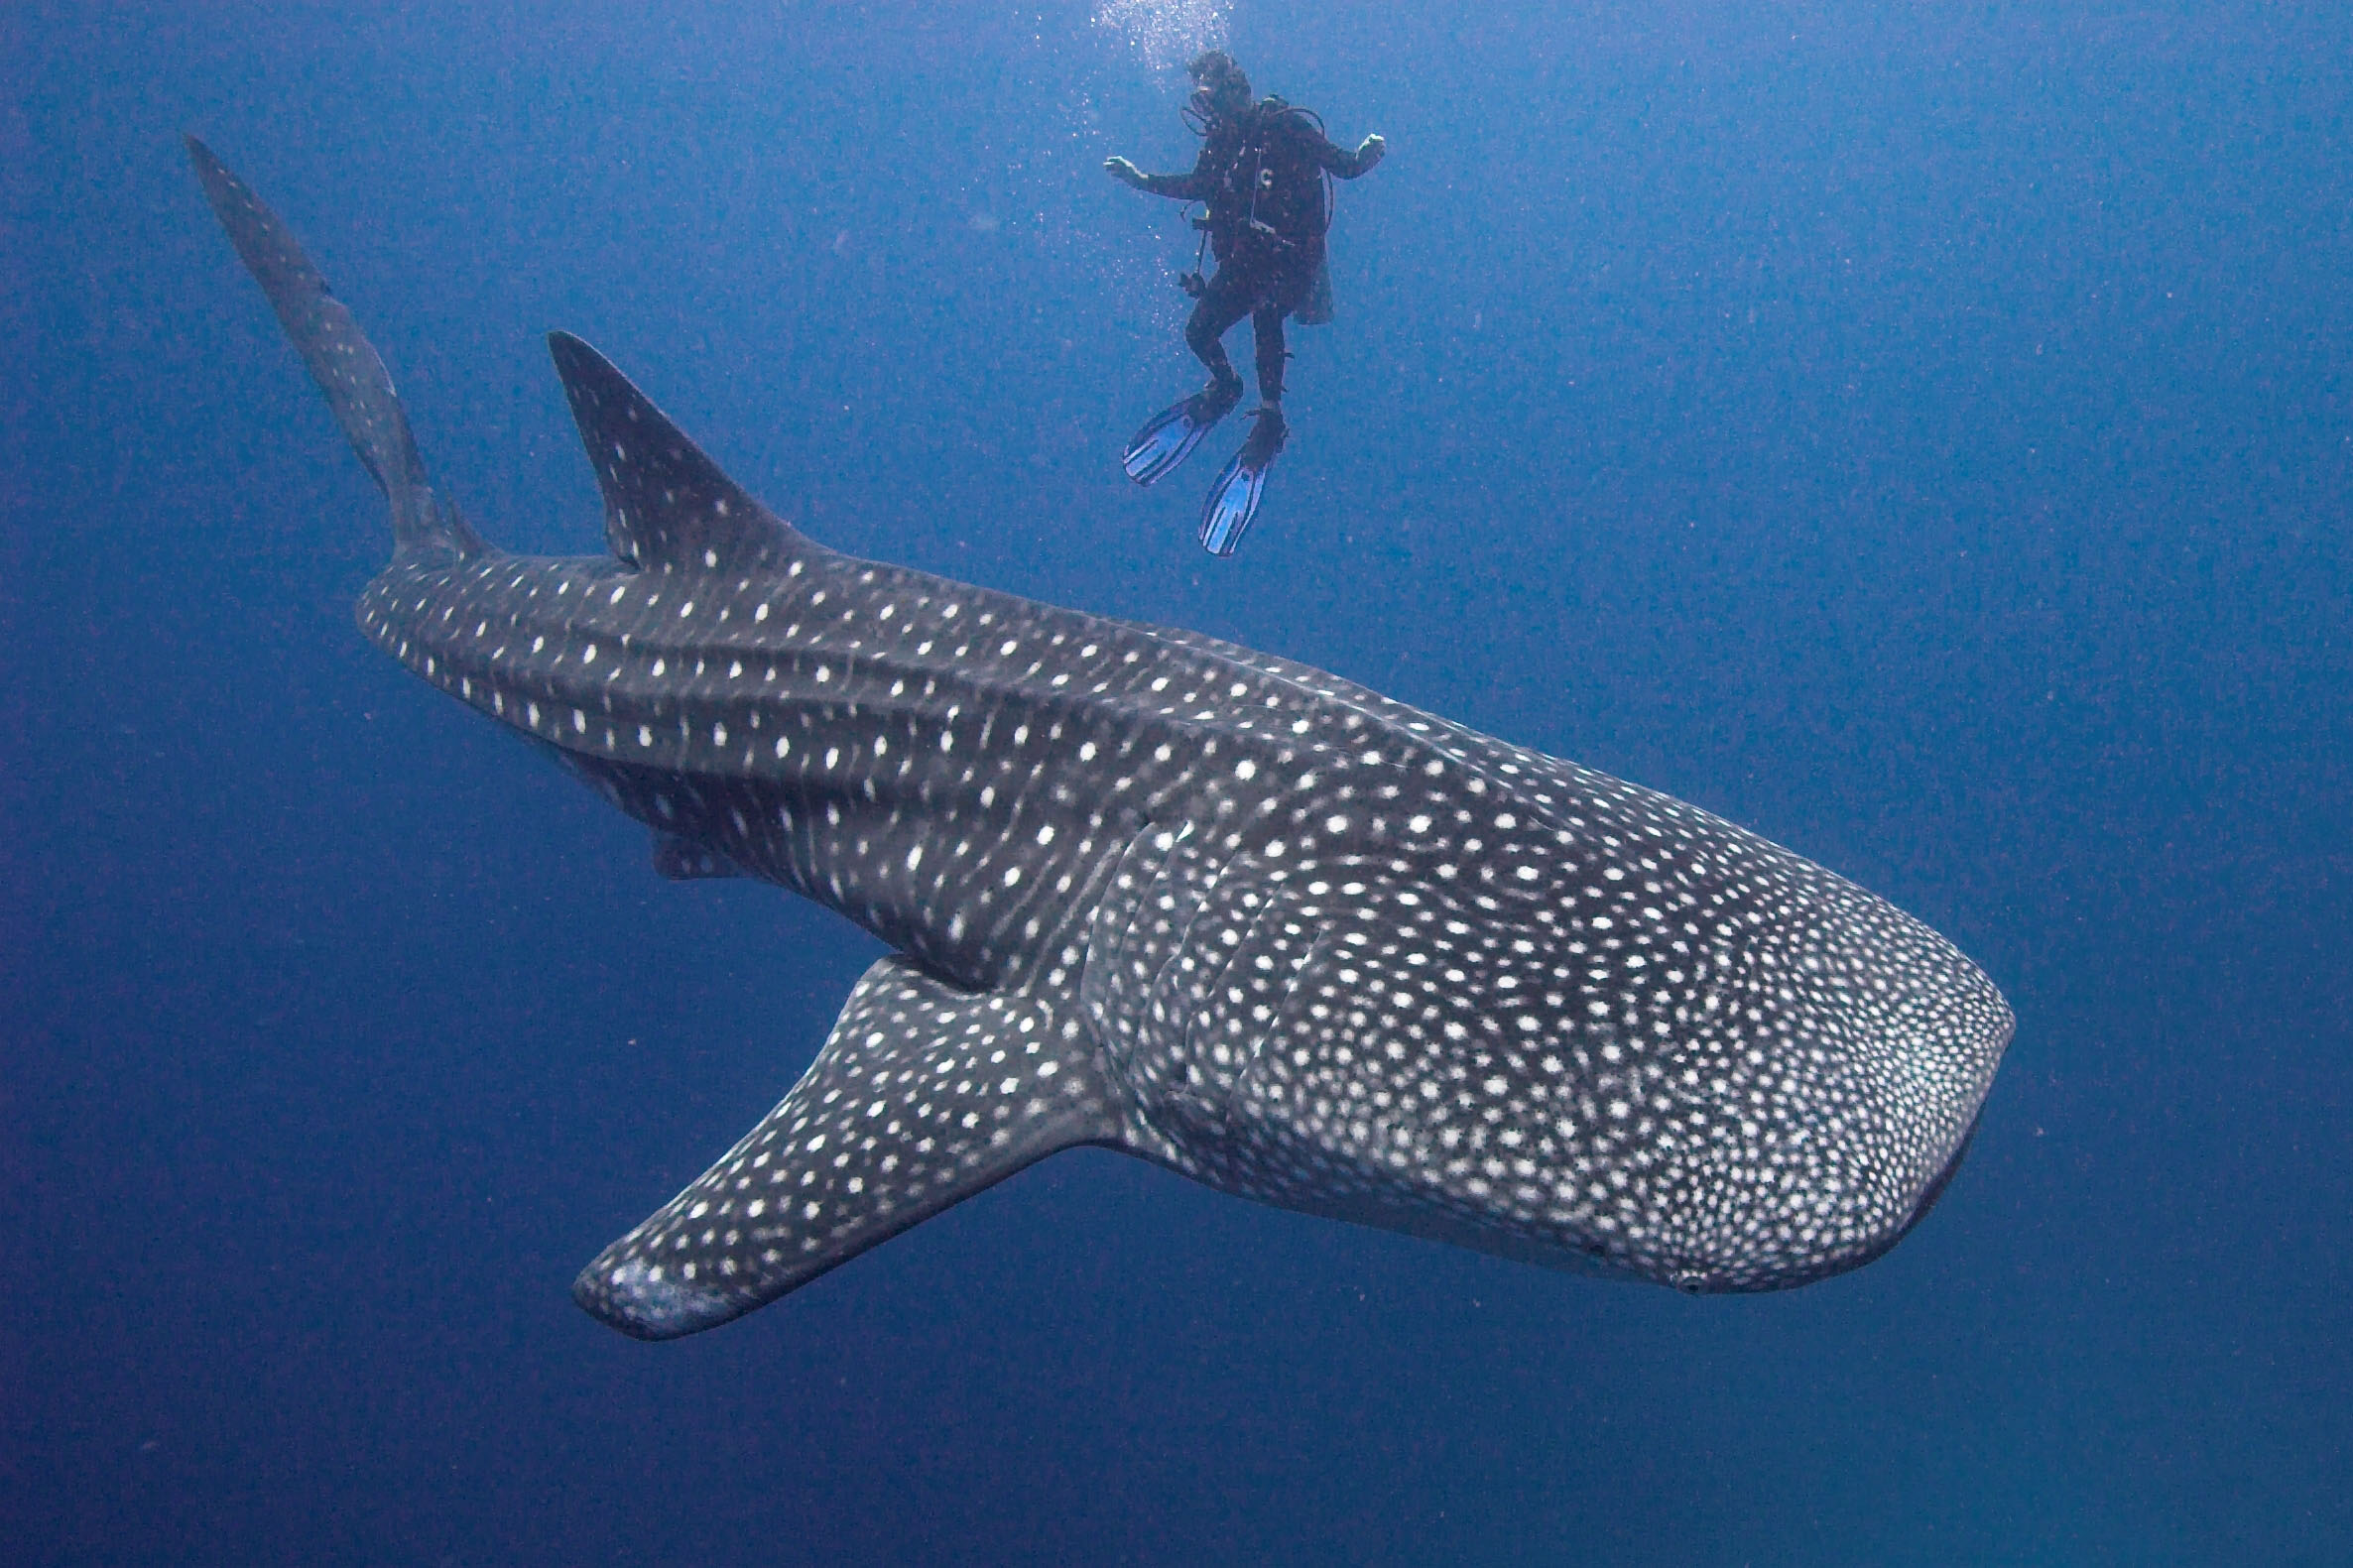 Giant Whale Shark Compared To Human